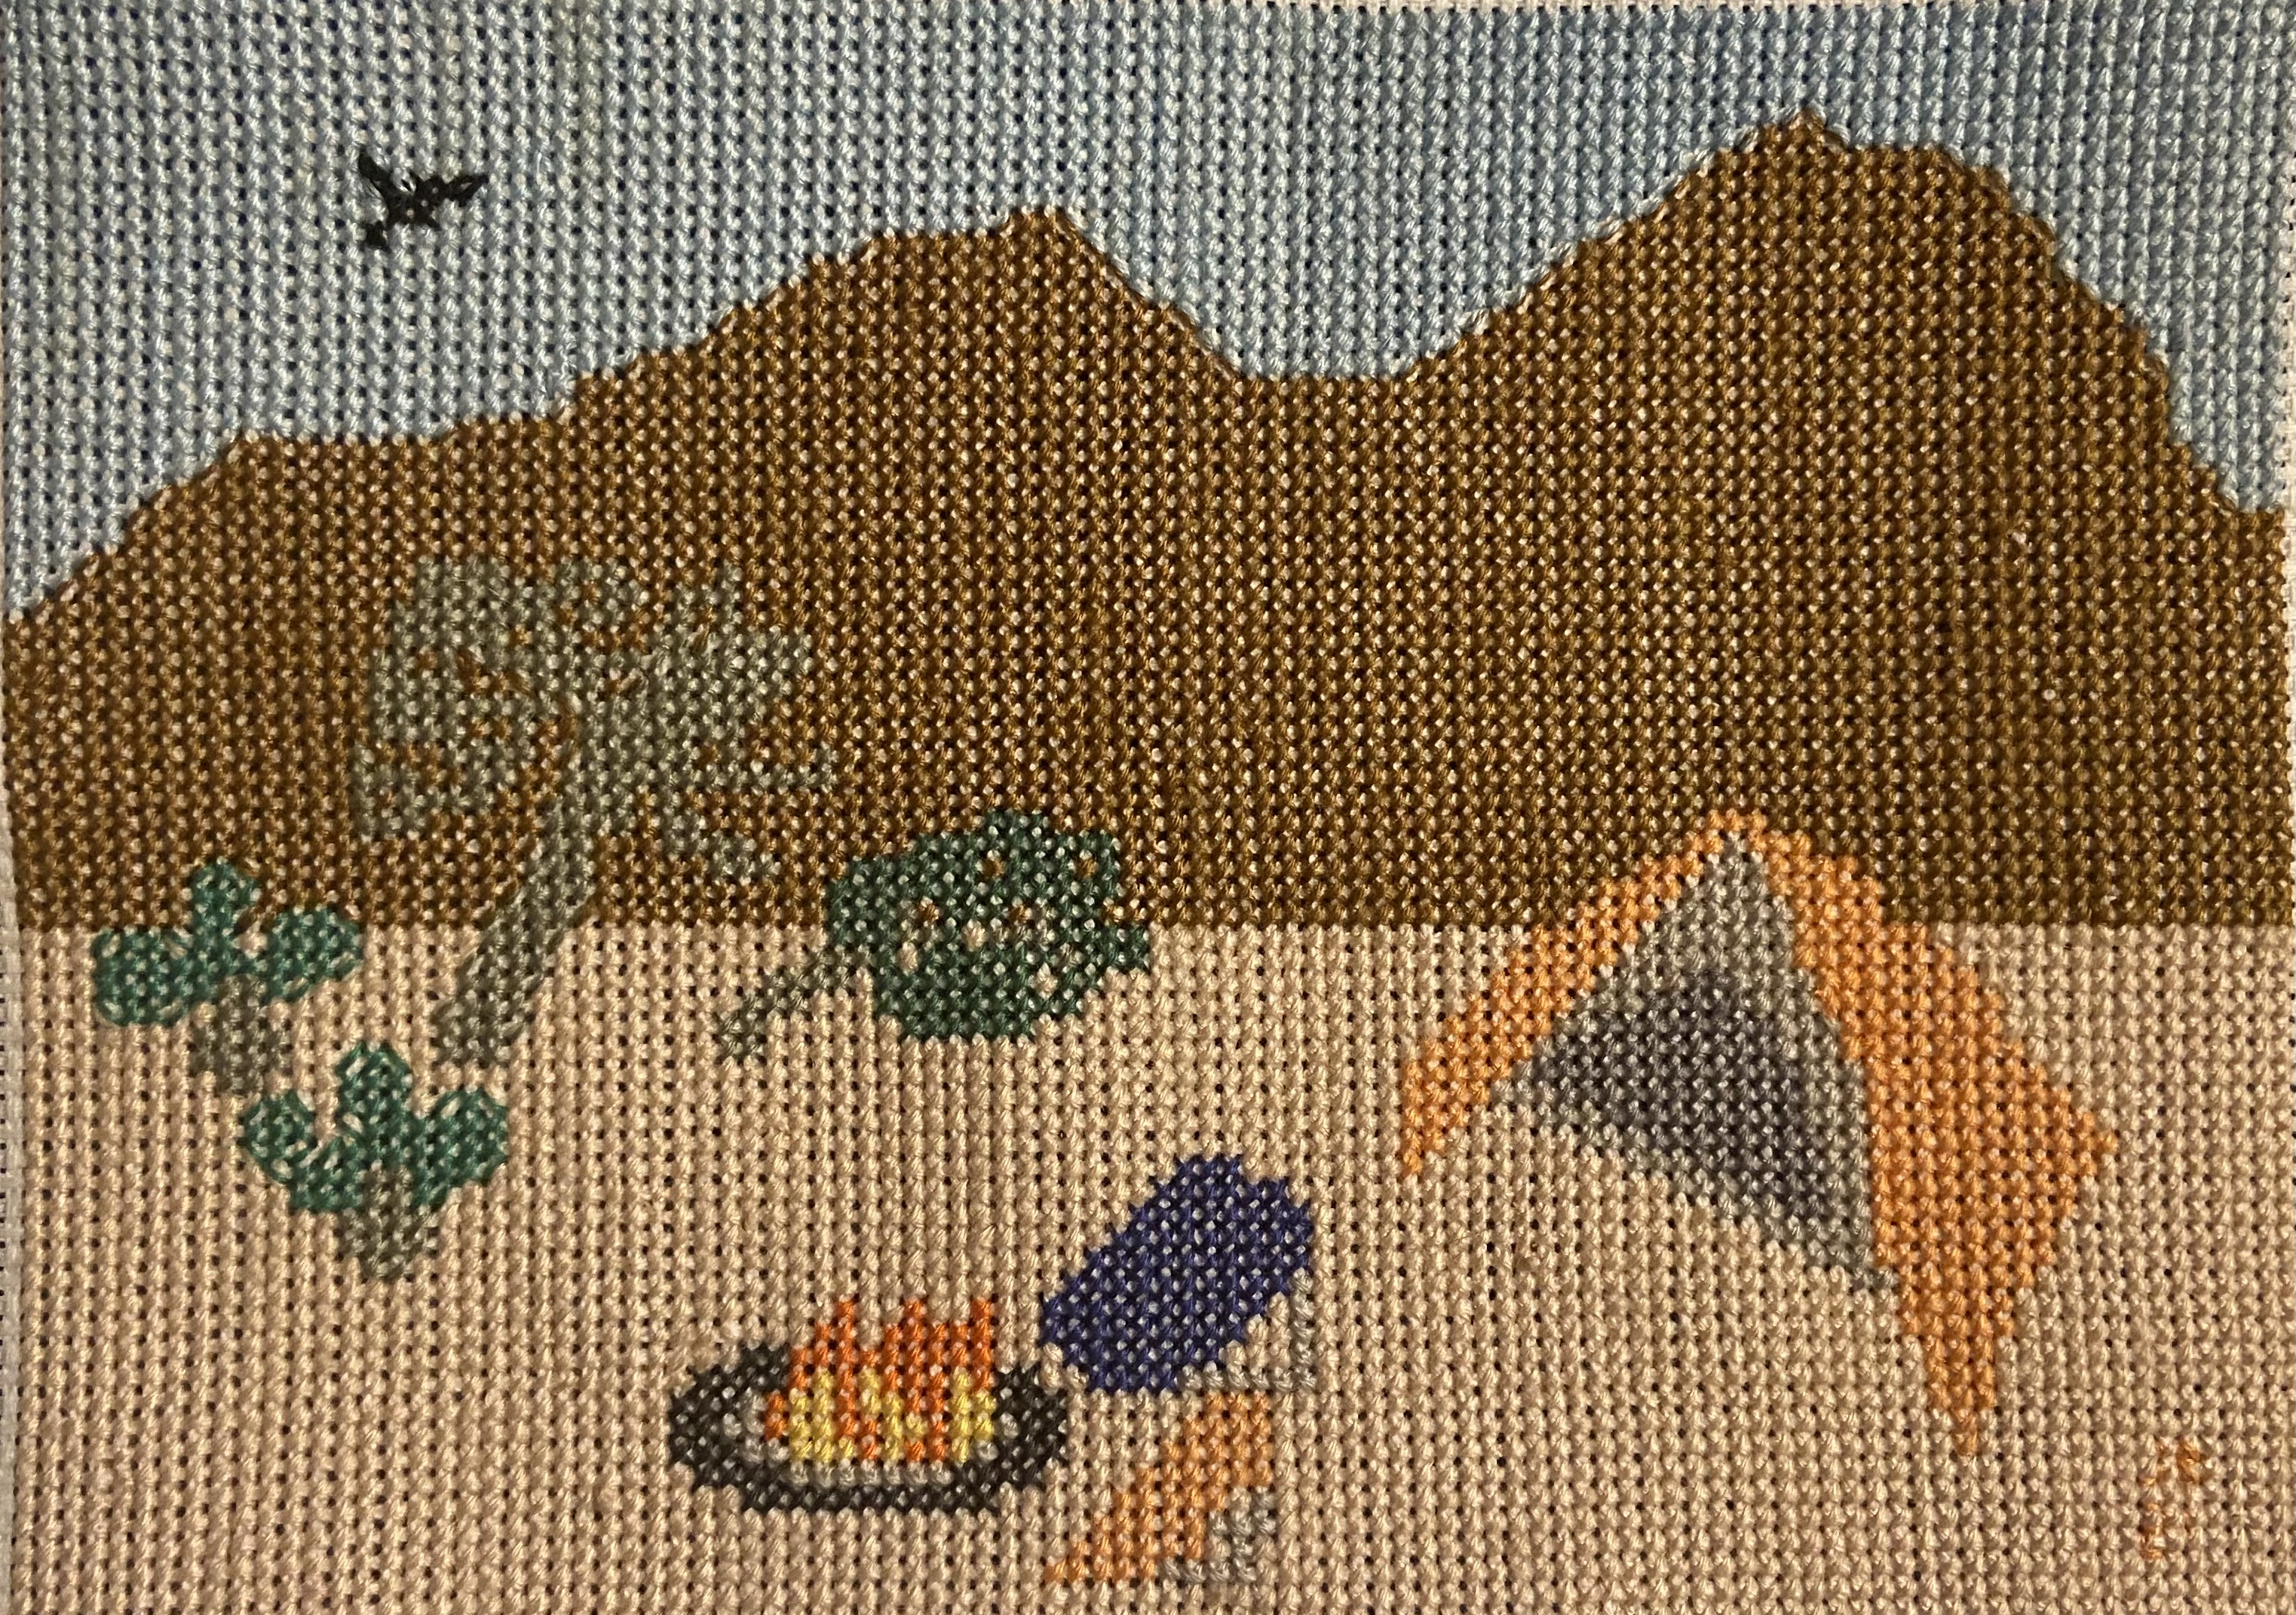 Desert Camping Cross Stitch project with mountains, a black bird, desert plants, a tent, chairs, and a campfire